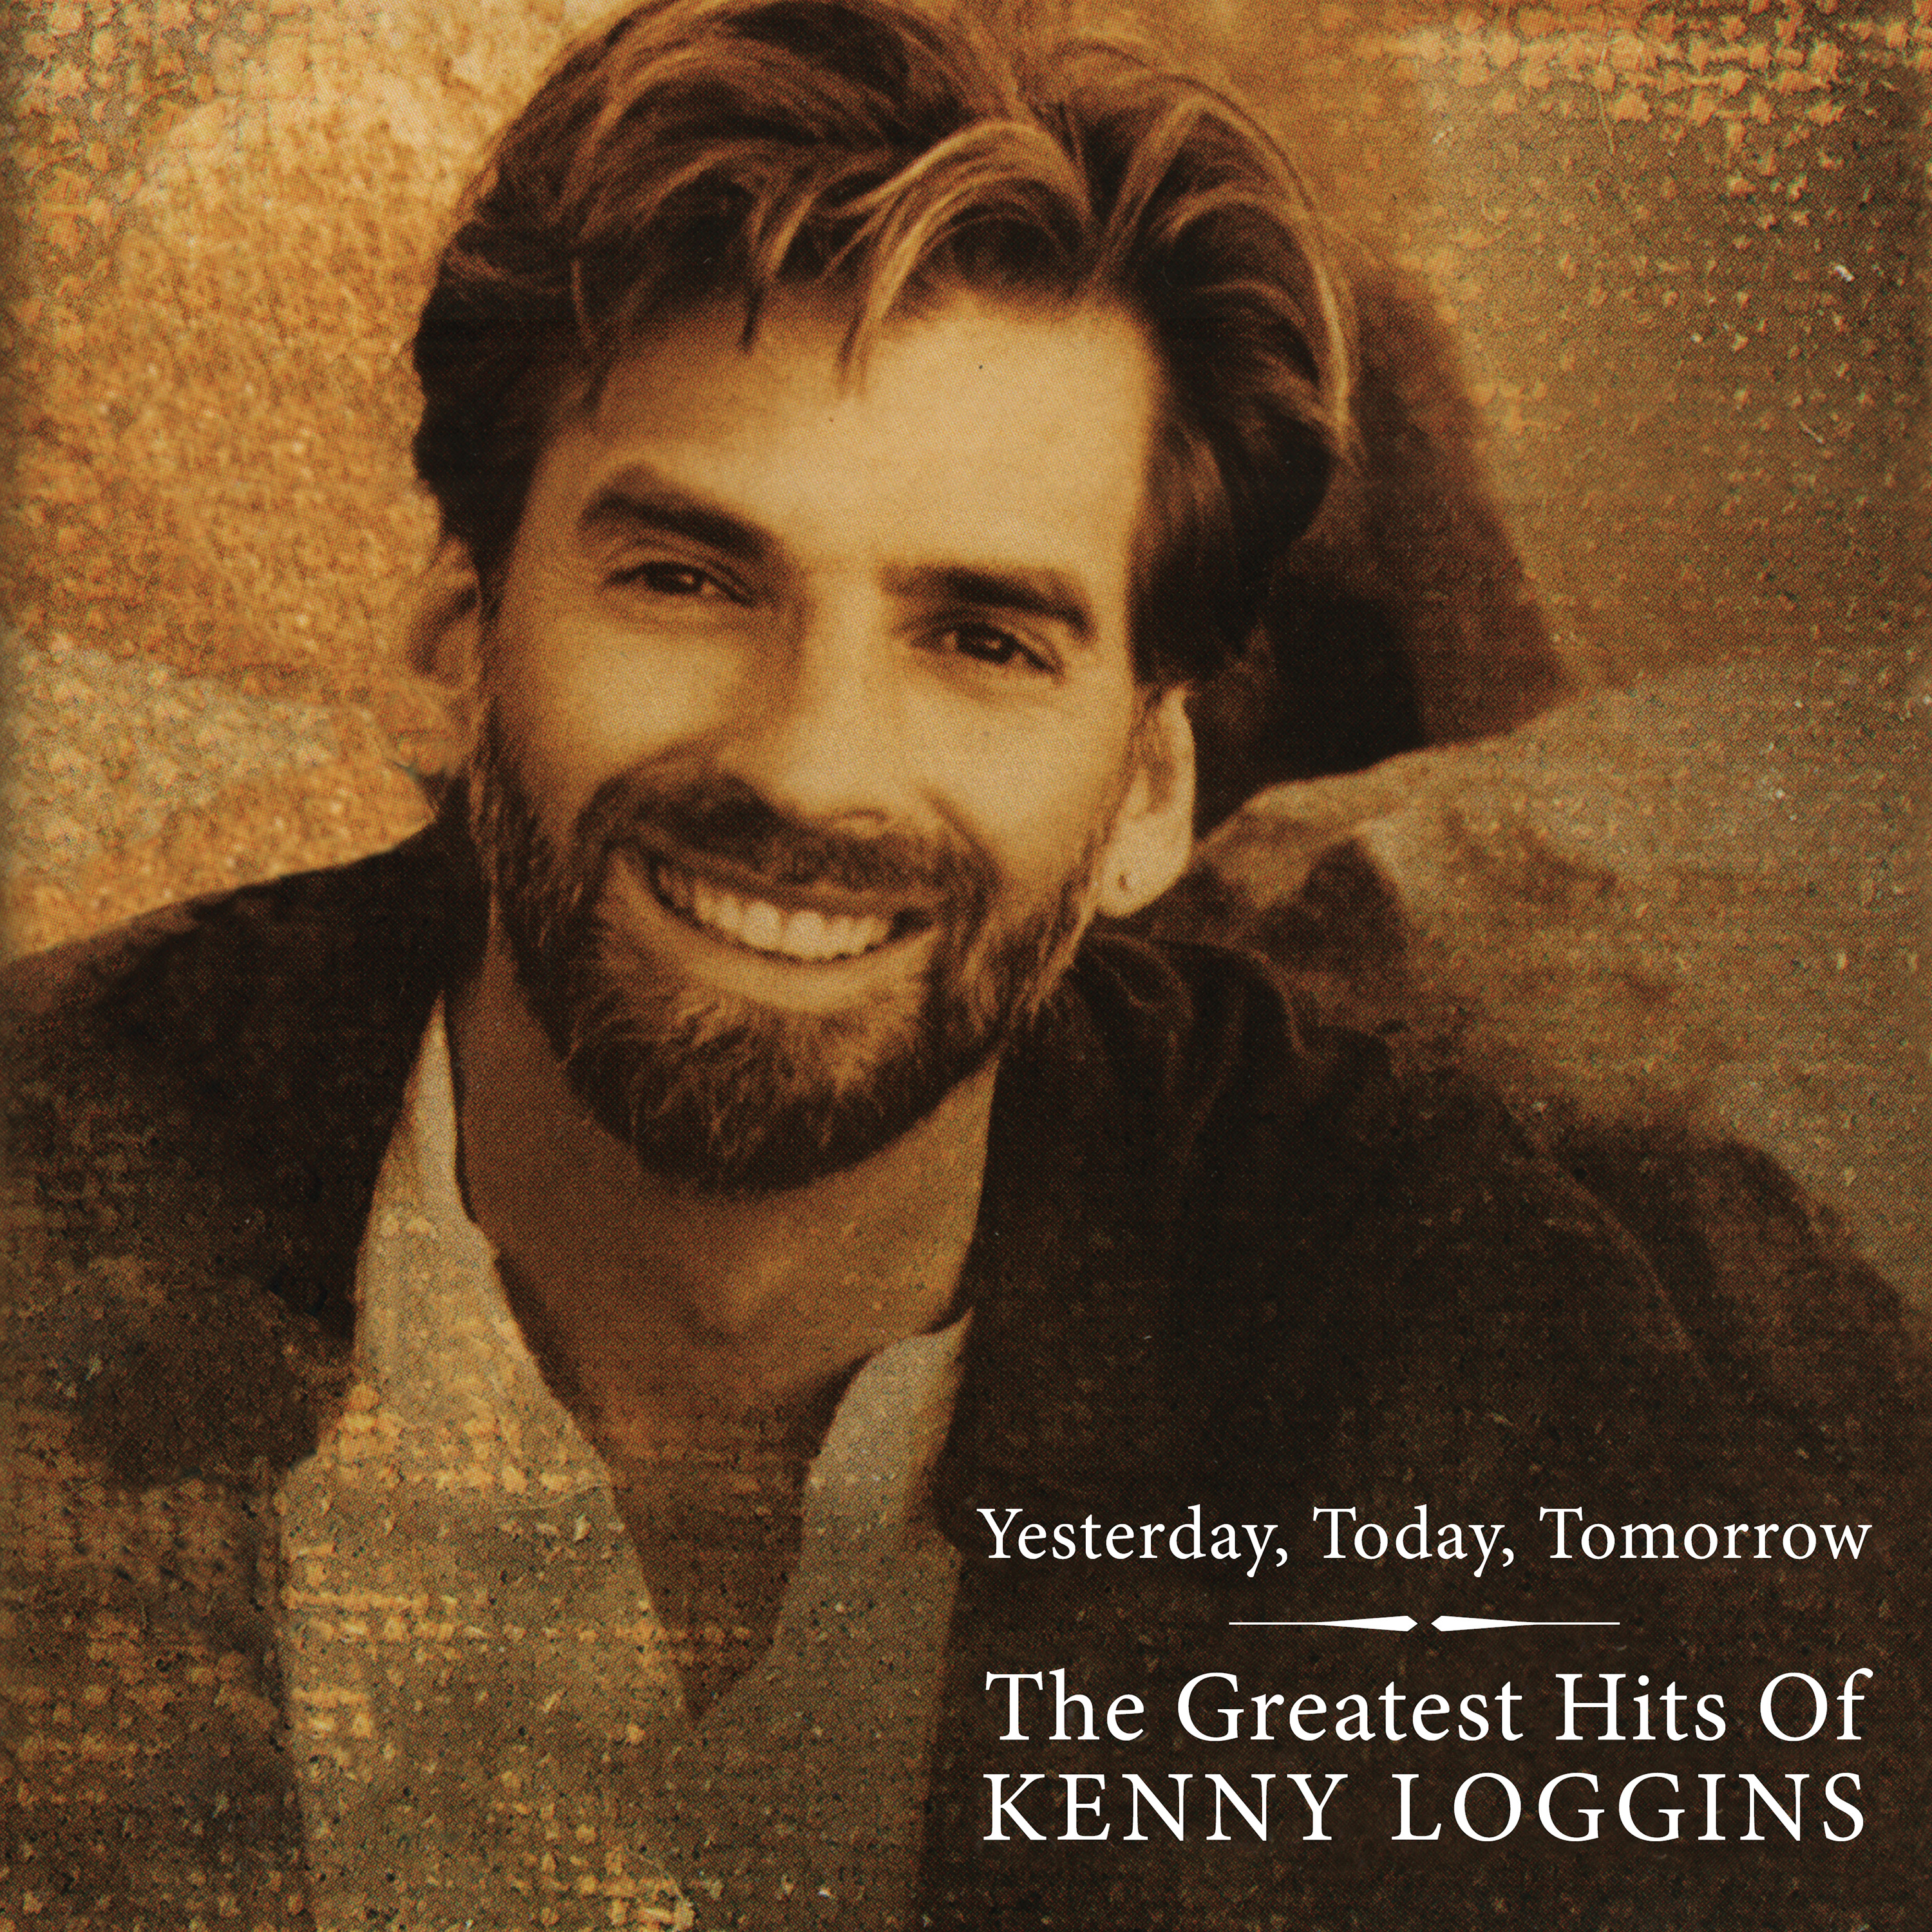 Kenny Loggins - Greatest Hits - Yesterday Today and Tomorrow (180 Gram Translucent Red Audiophile Vinyl/Limited Edition /Gatefold Cover & Poster)